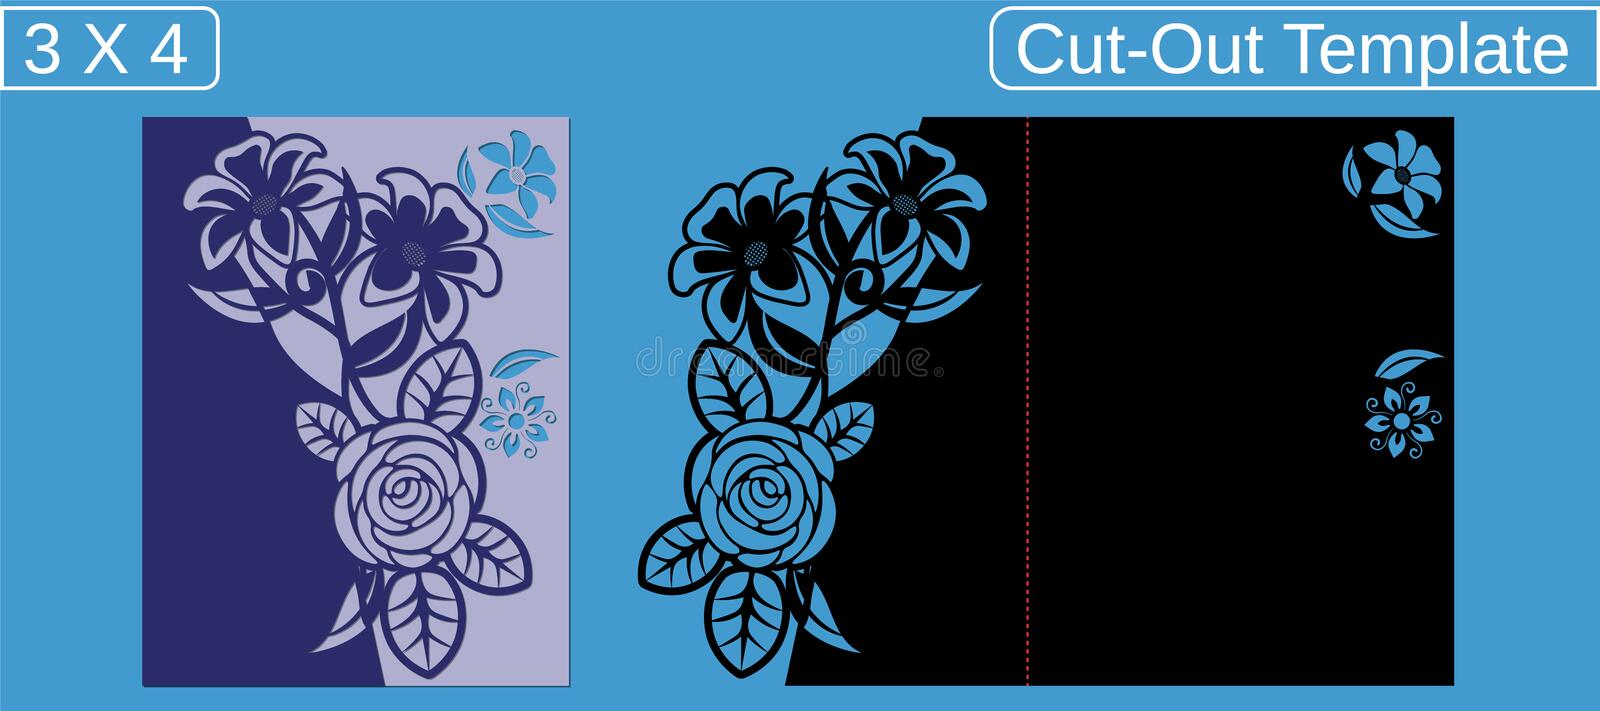 Laser cut wedding invitation card template.  Cut out the paper card with floral pattern.  Greeting card with an aspect ratio of 3 stock images